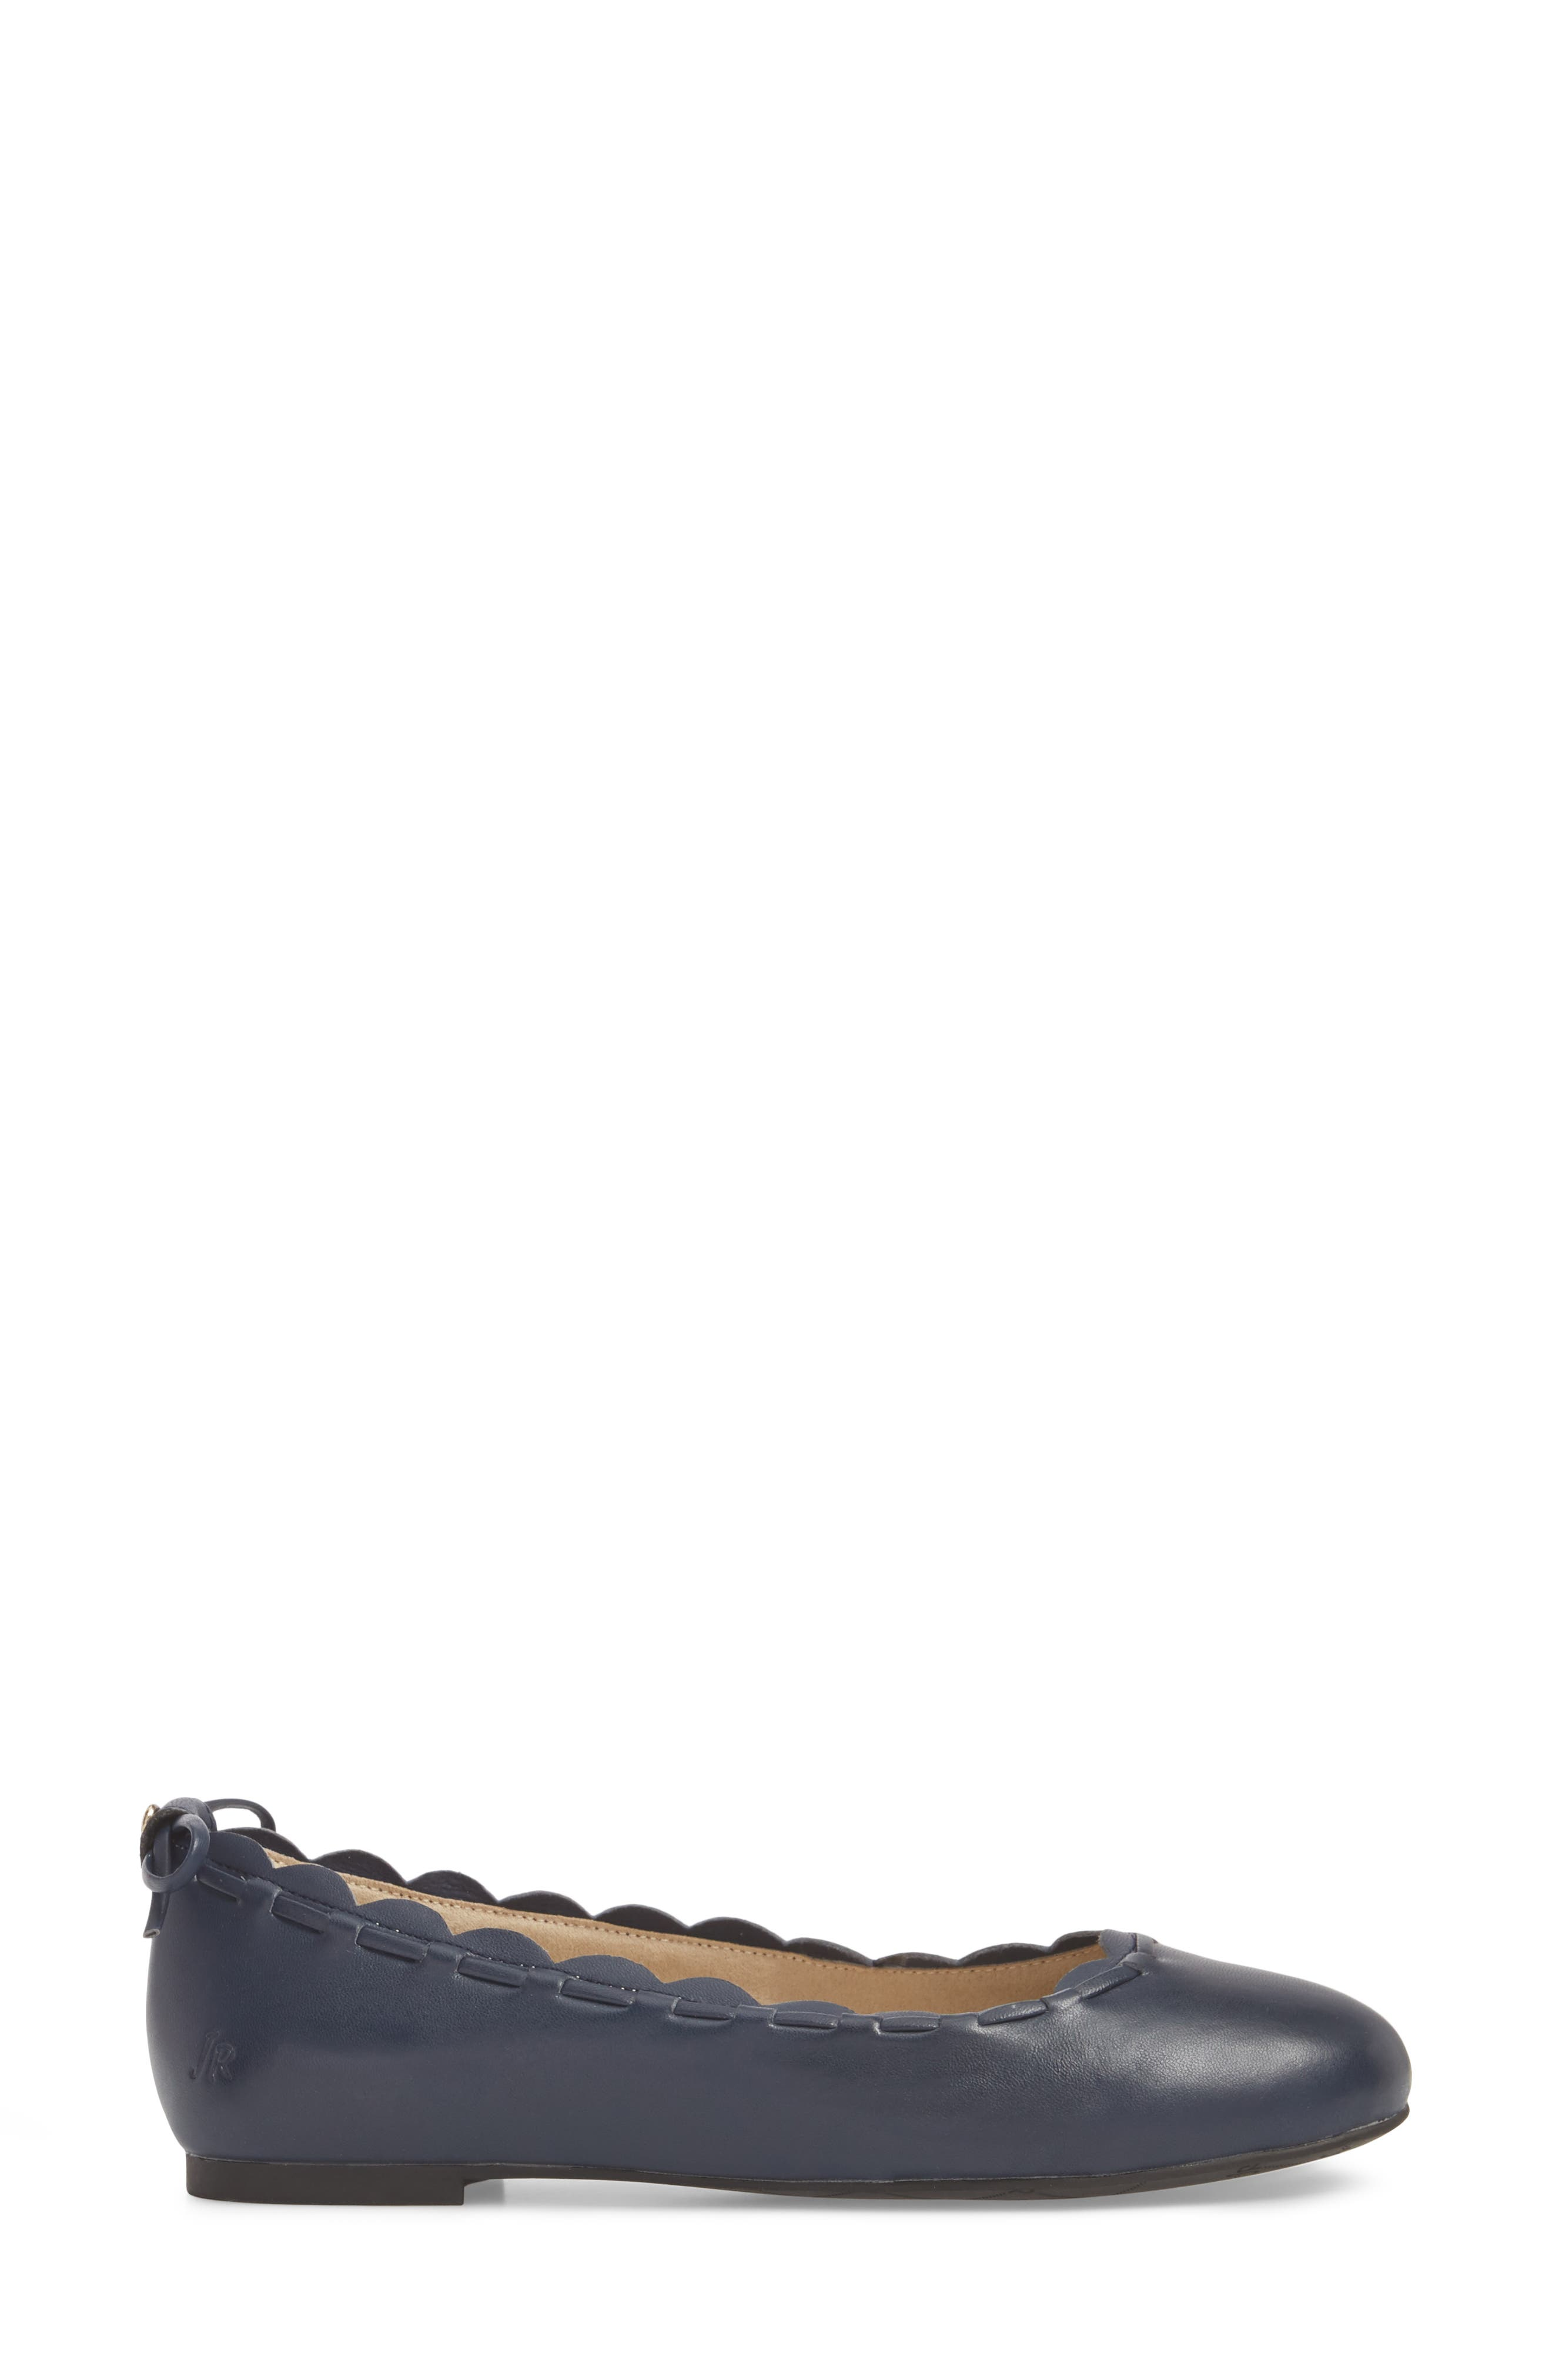 Lucie II Scalloped Flat,                             Alternate thumbnail 6, color,                             Midnight Blue Leather